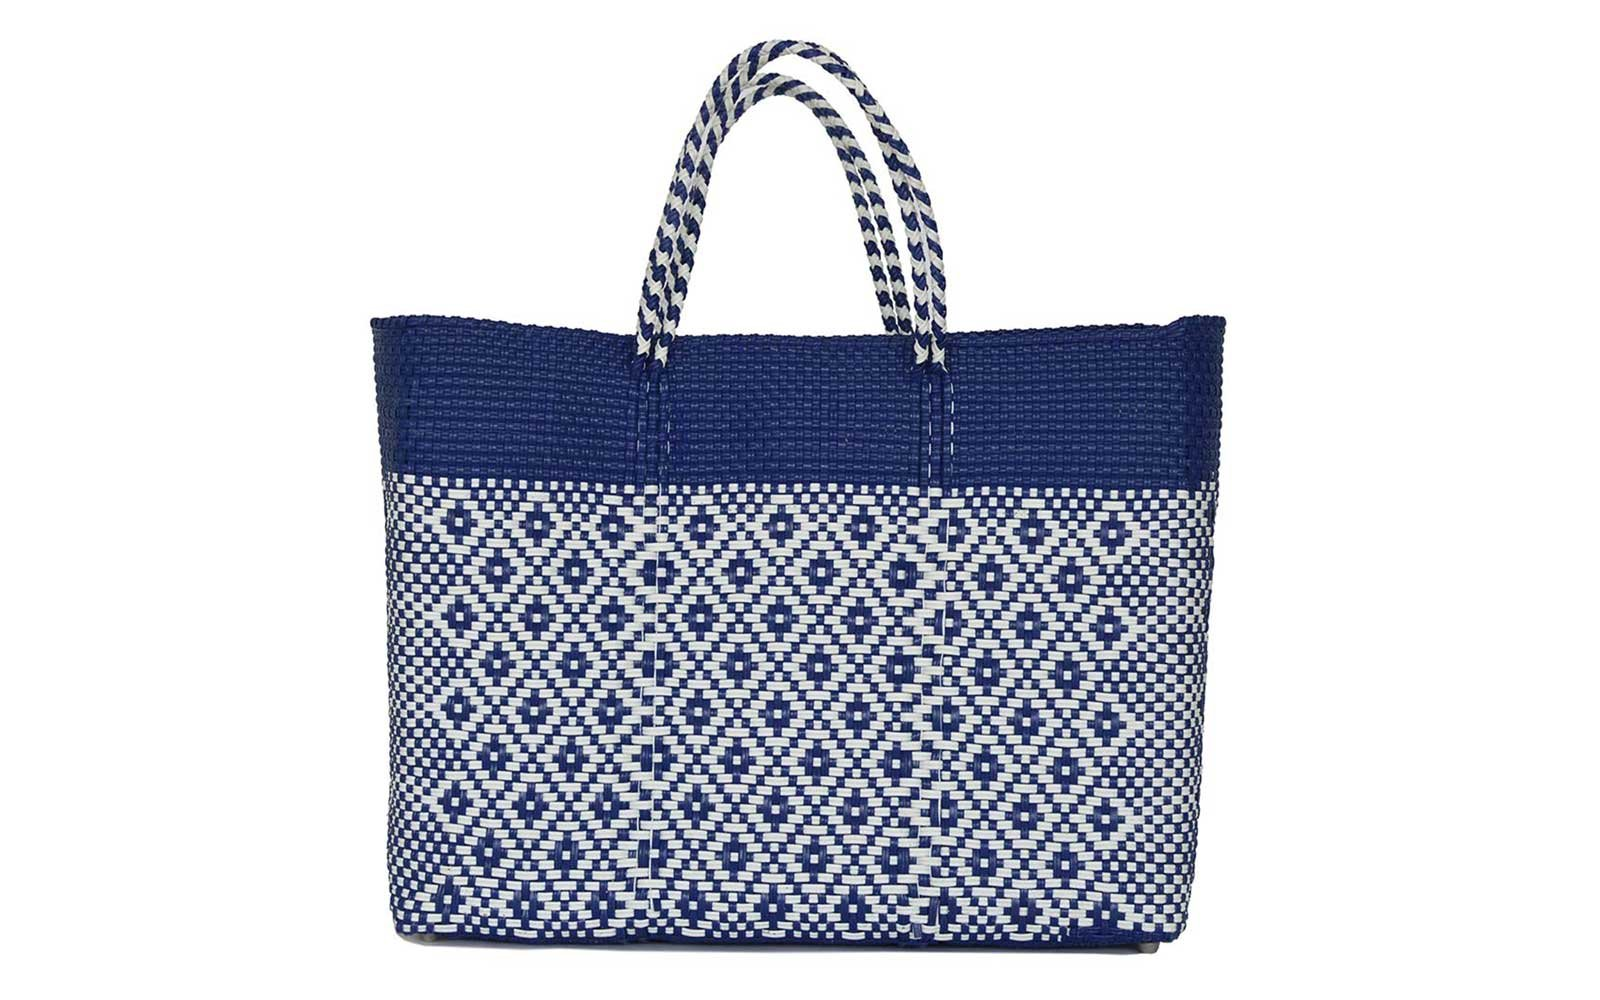 Patterned Beach Totes